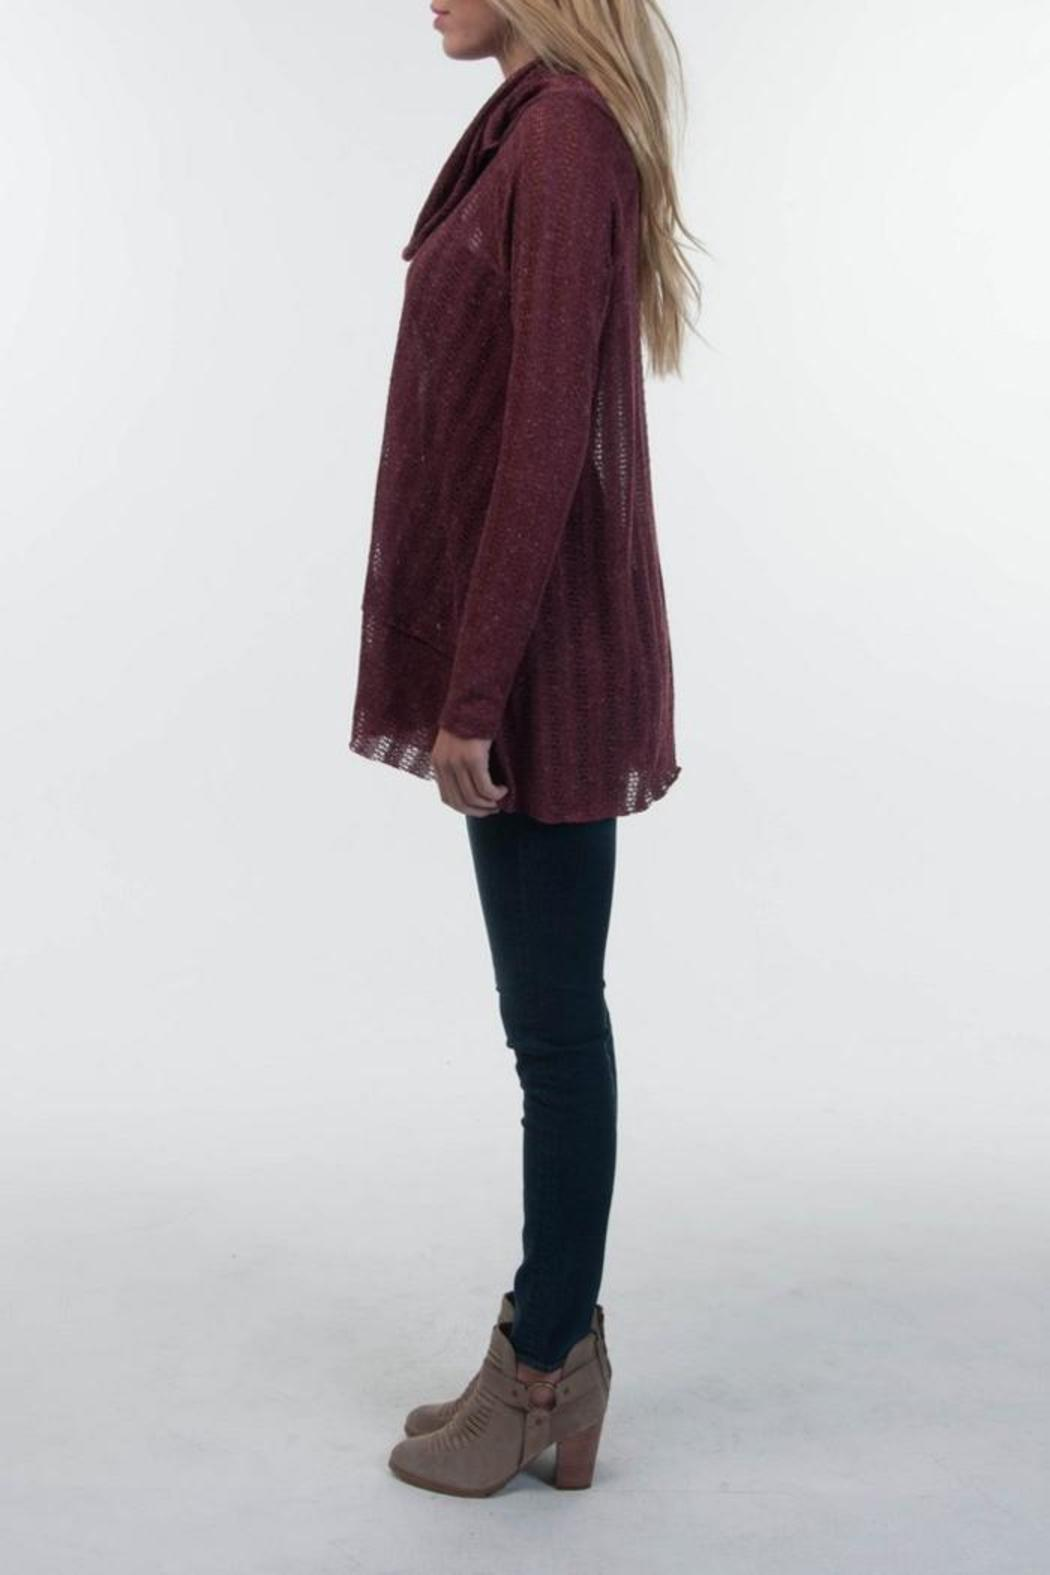 PPLA Broadway Cowlneck Sweater - Front Full Image